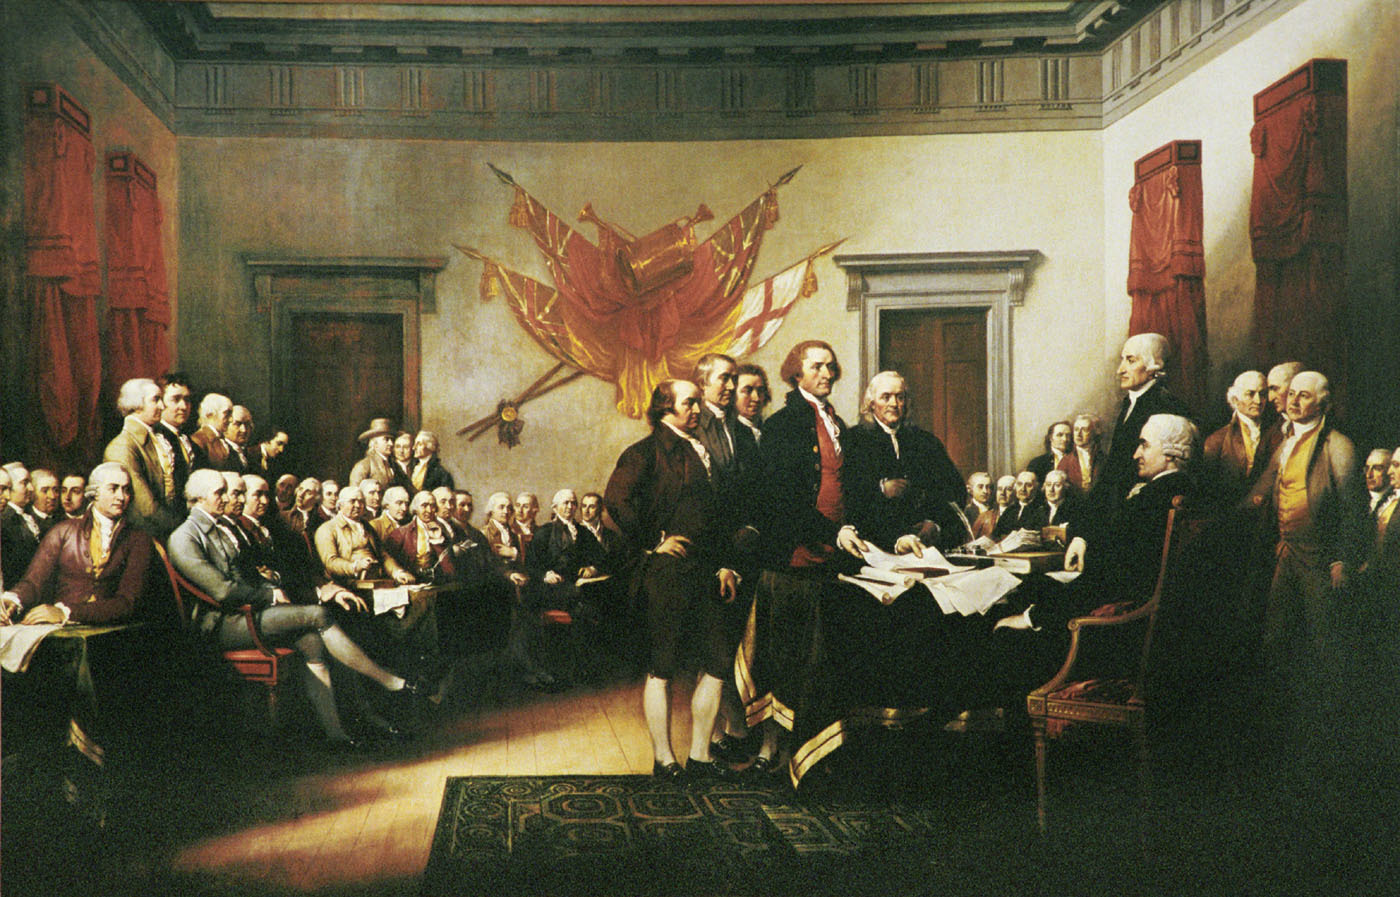 declaration of independence by HD Wallpaper